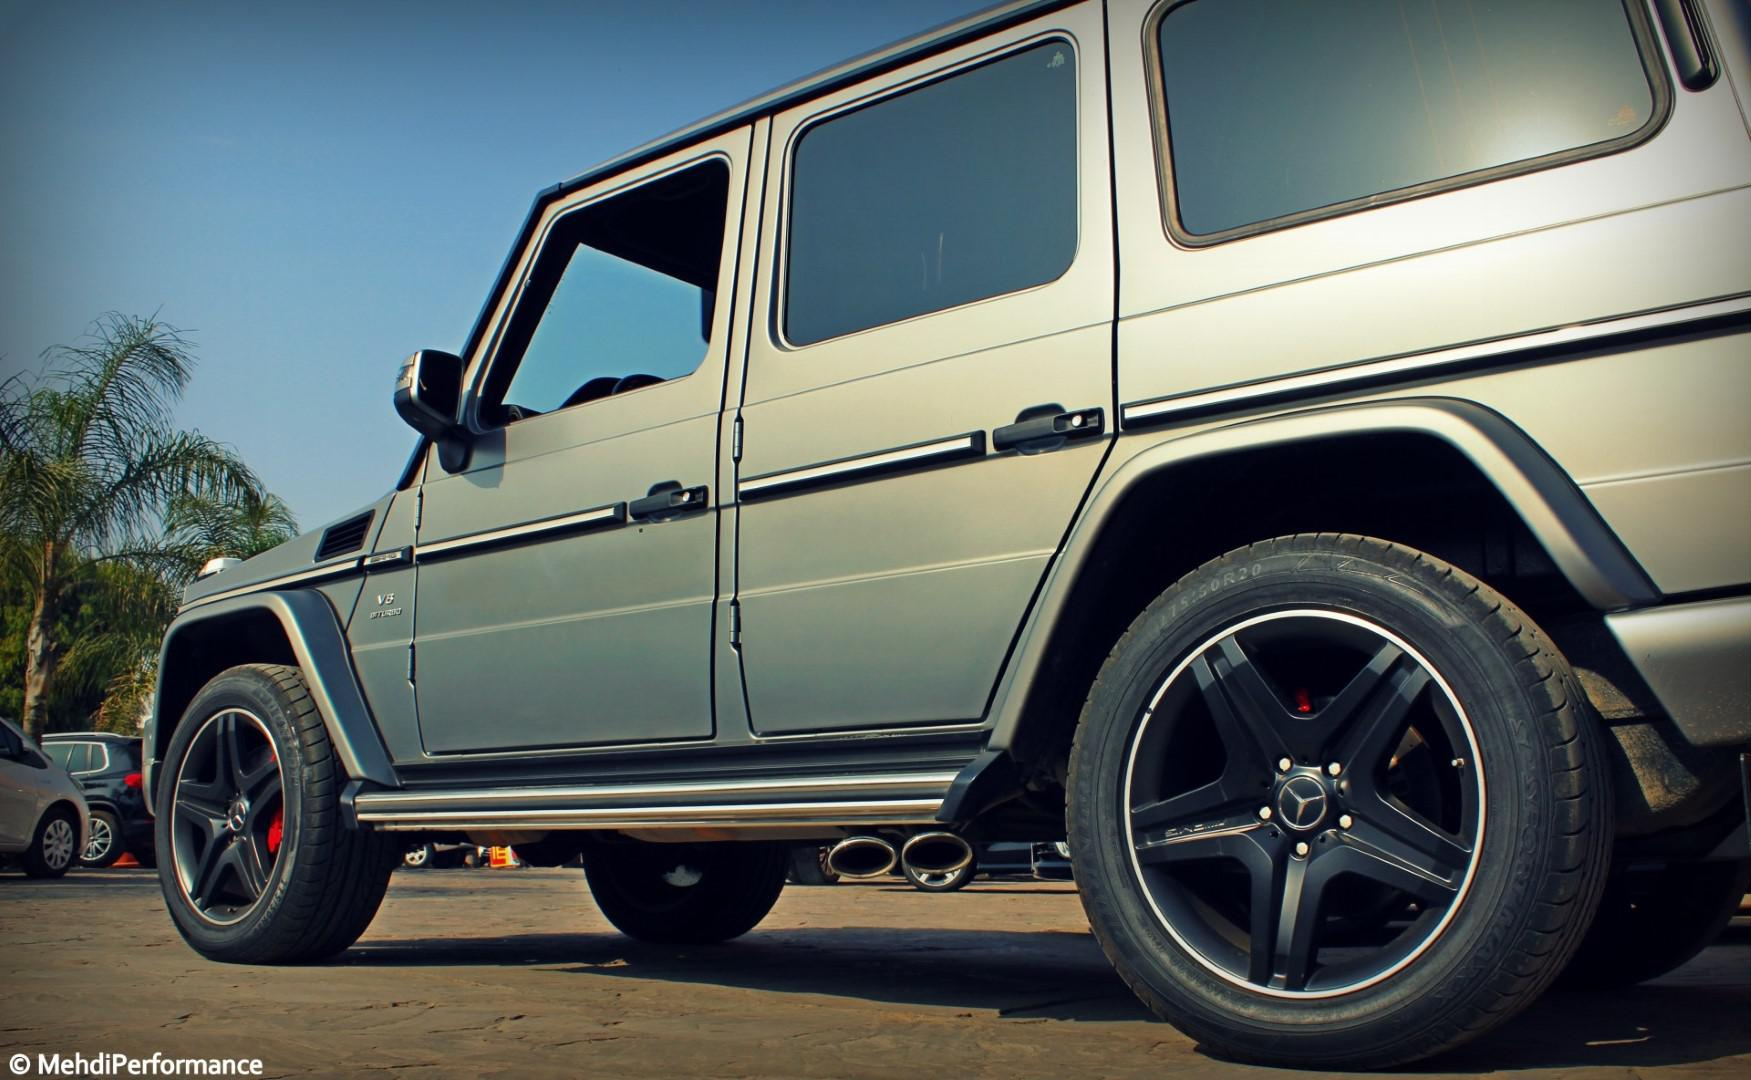 Mercedes-Amg G63 : Un 4×4 de conception antique, catapulté par un V8 biturbo de plus de 500 ch